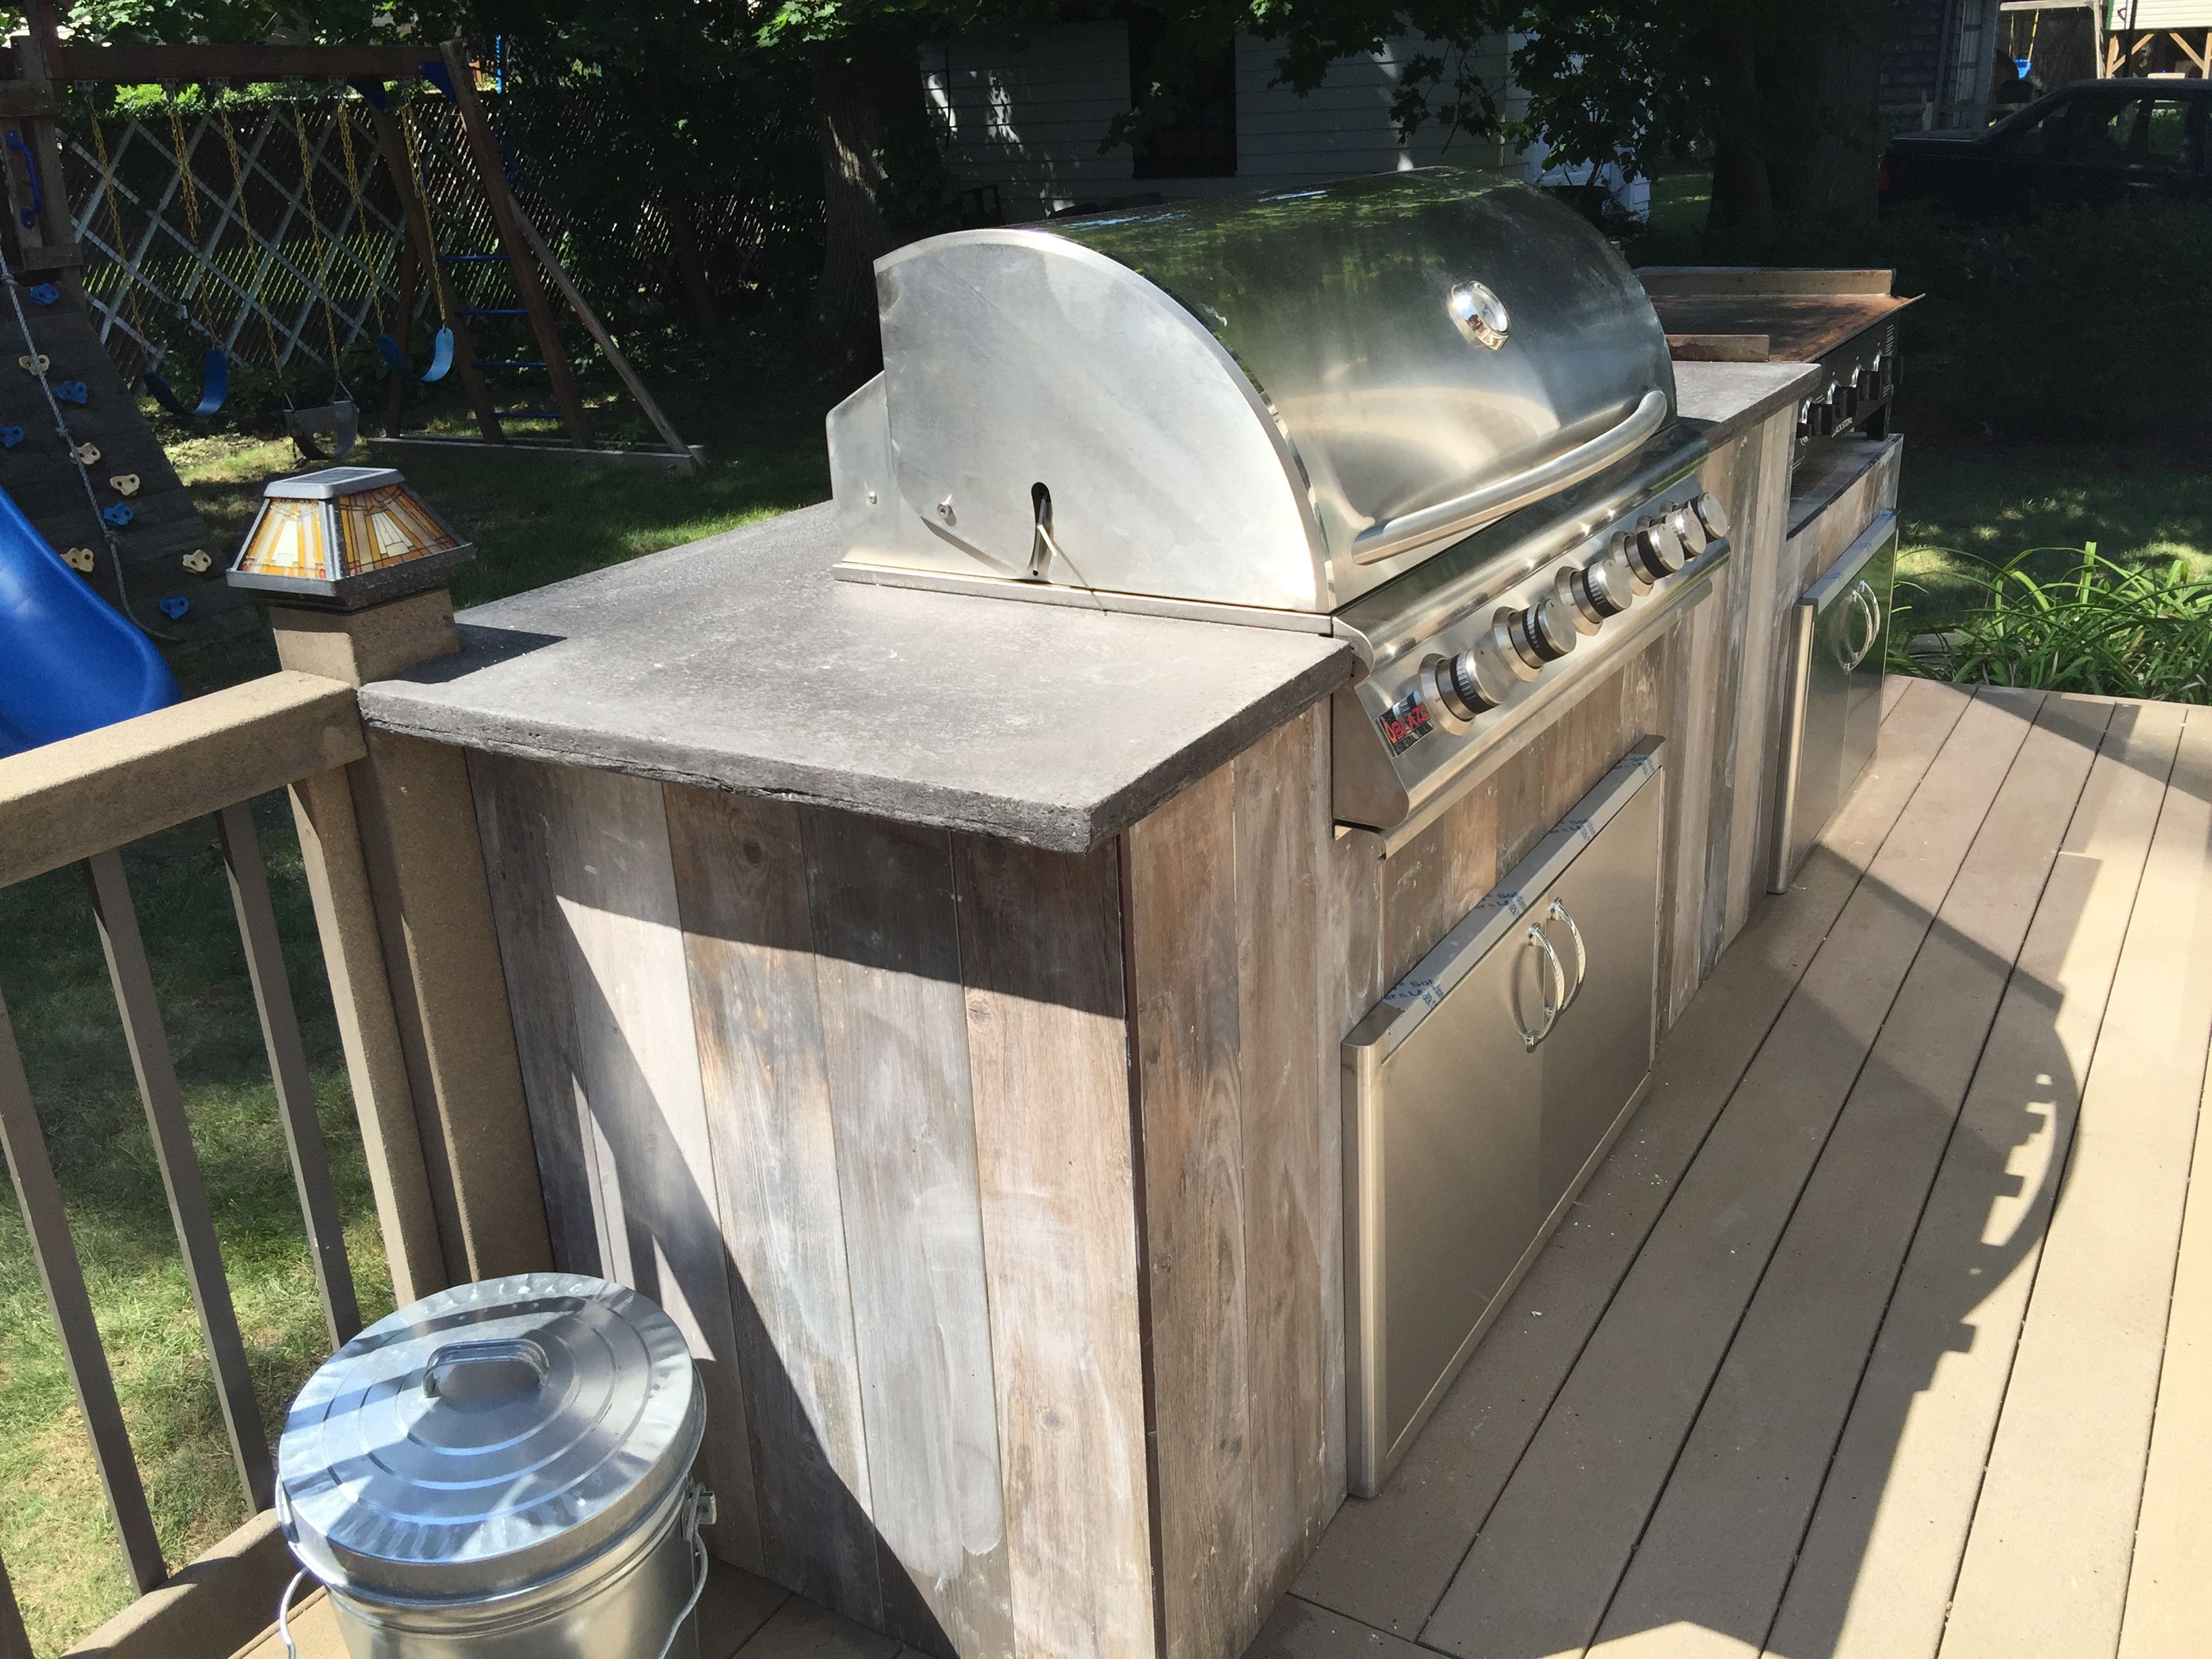 Outdoor Kitchen With Grill And Griddle Station With Concrete Countertop And Reclaimed Wood Tiles Outdoor Kitchen Countertops Outdoor Wood Outdoor Kitchen